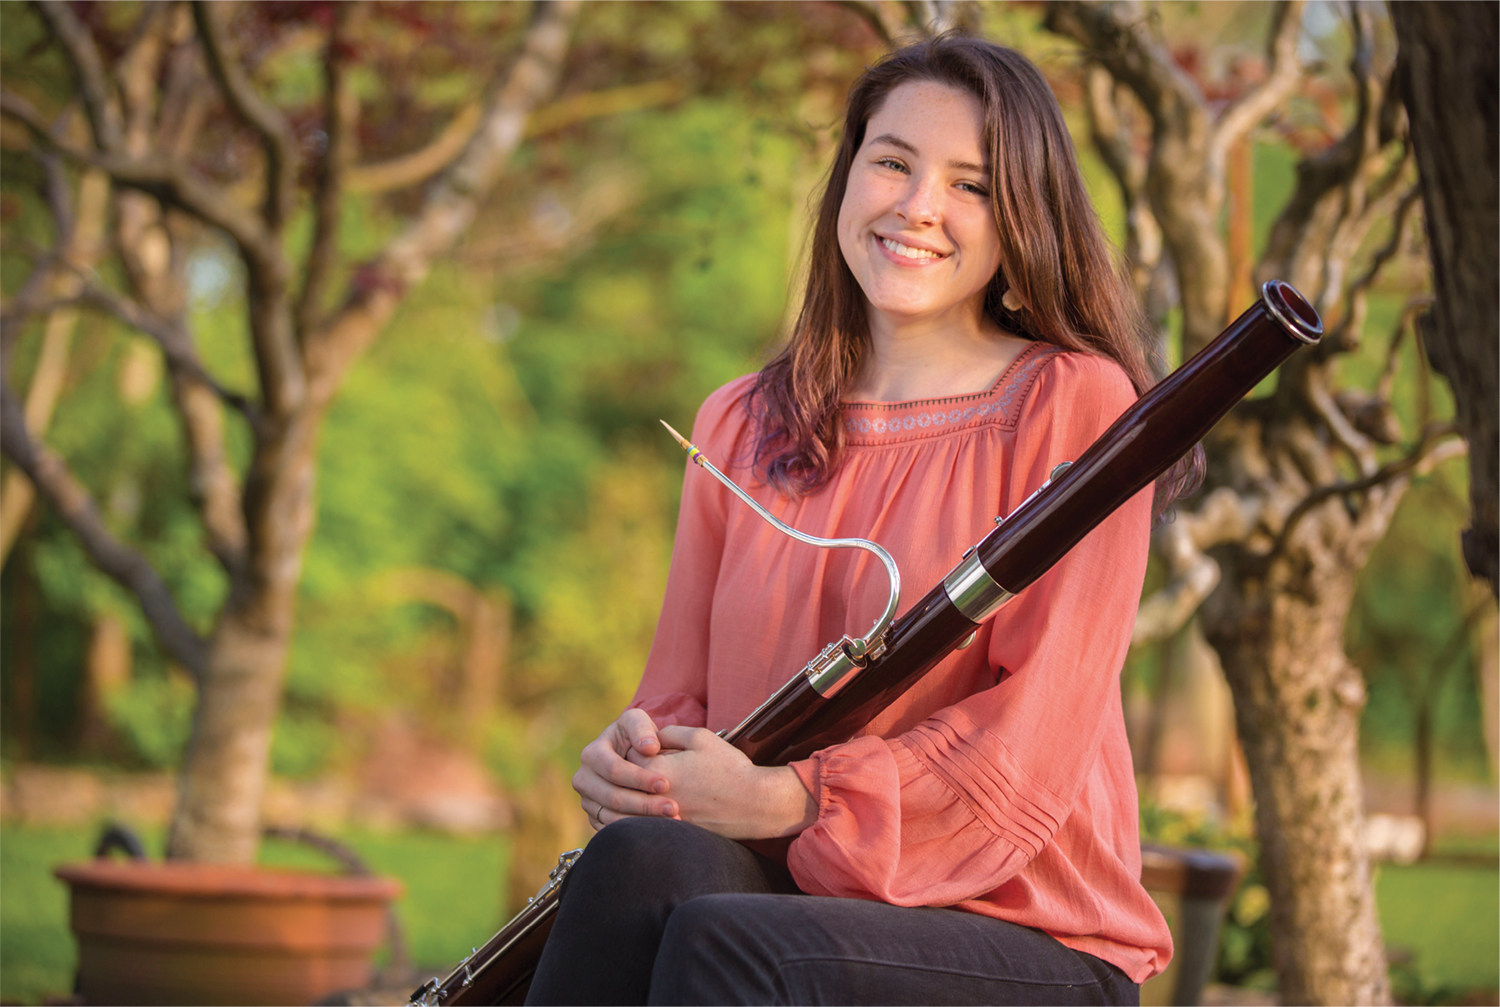 photo of Sarah Robinson holding a bassoon